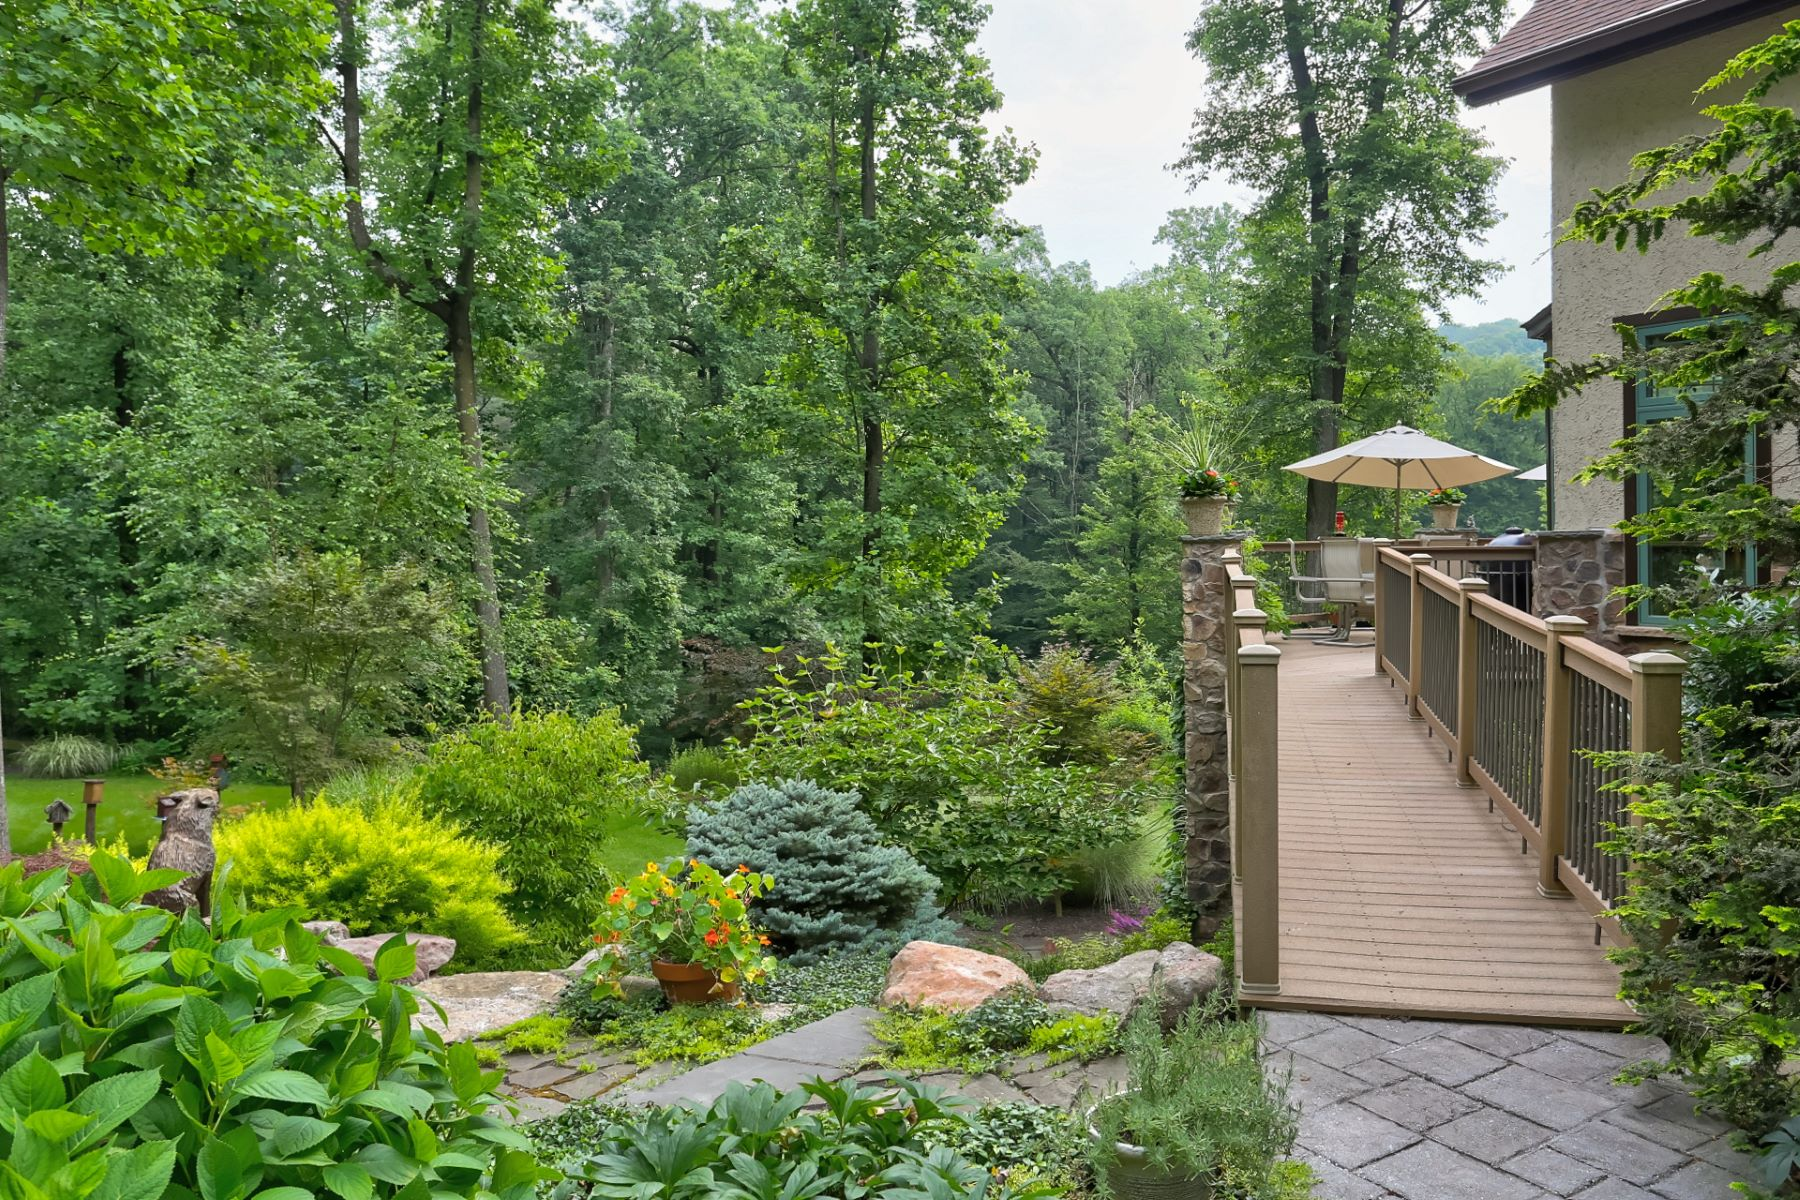 Additional photo for property listing at 3 Stone Pond Lane  Wernersville, Pennsylvania 19565 Estados Unidos